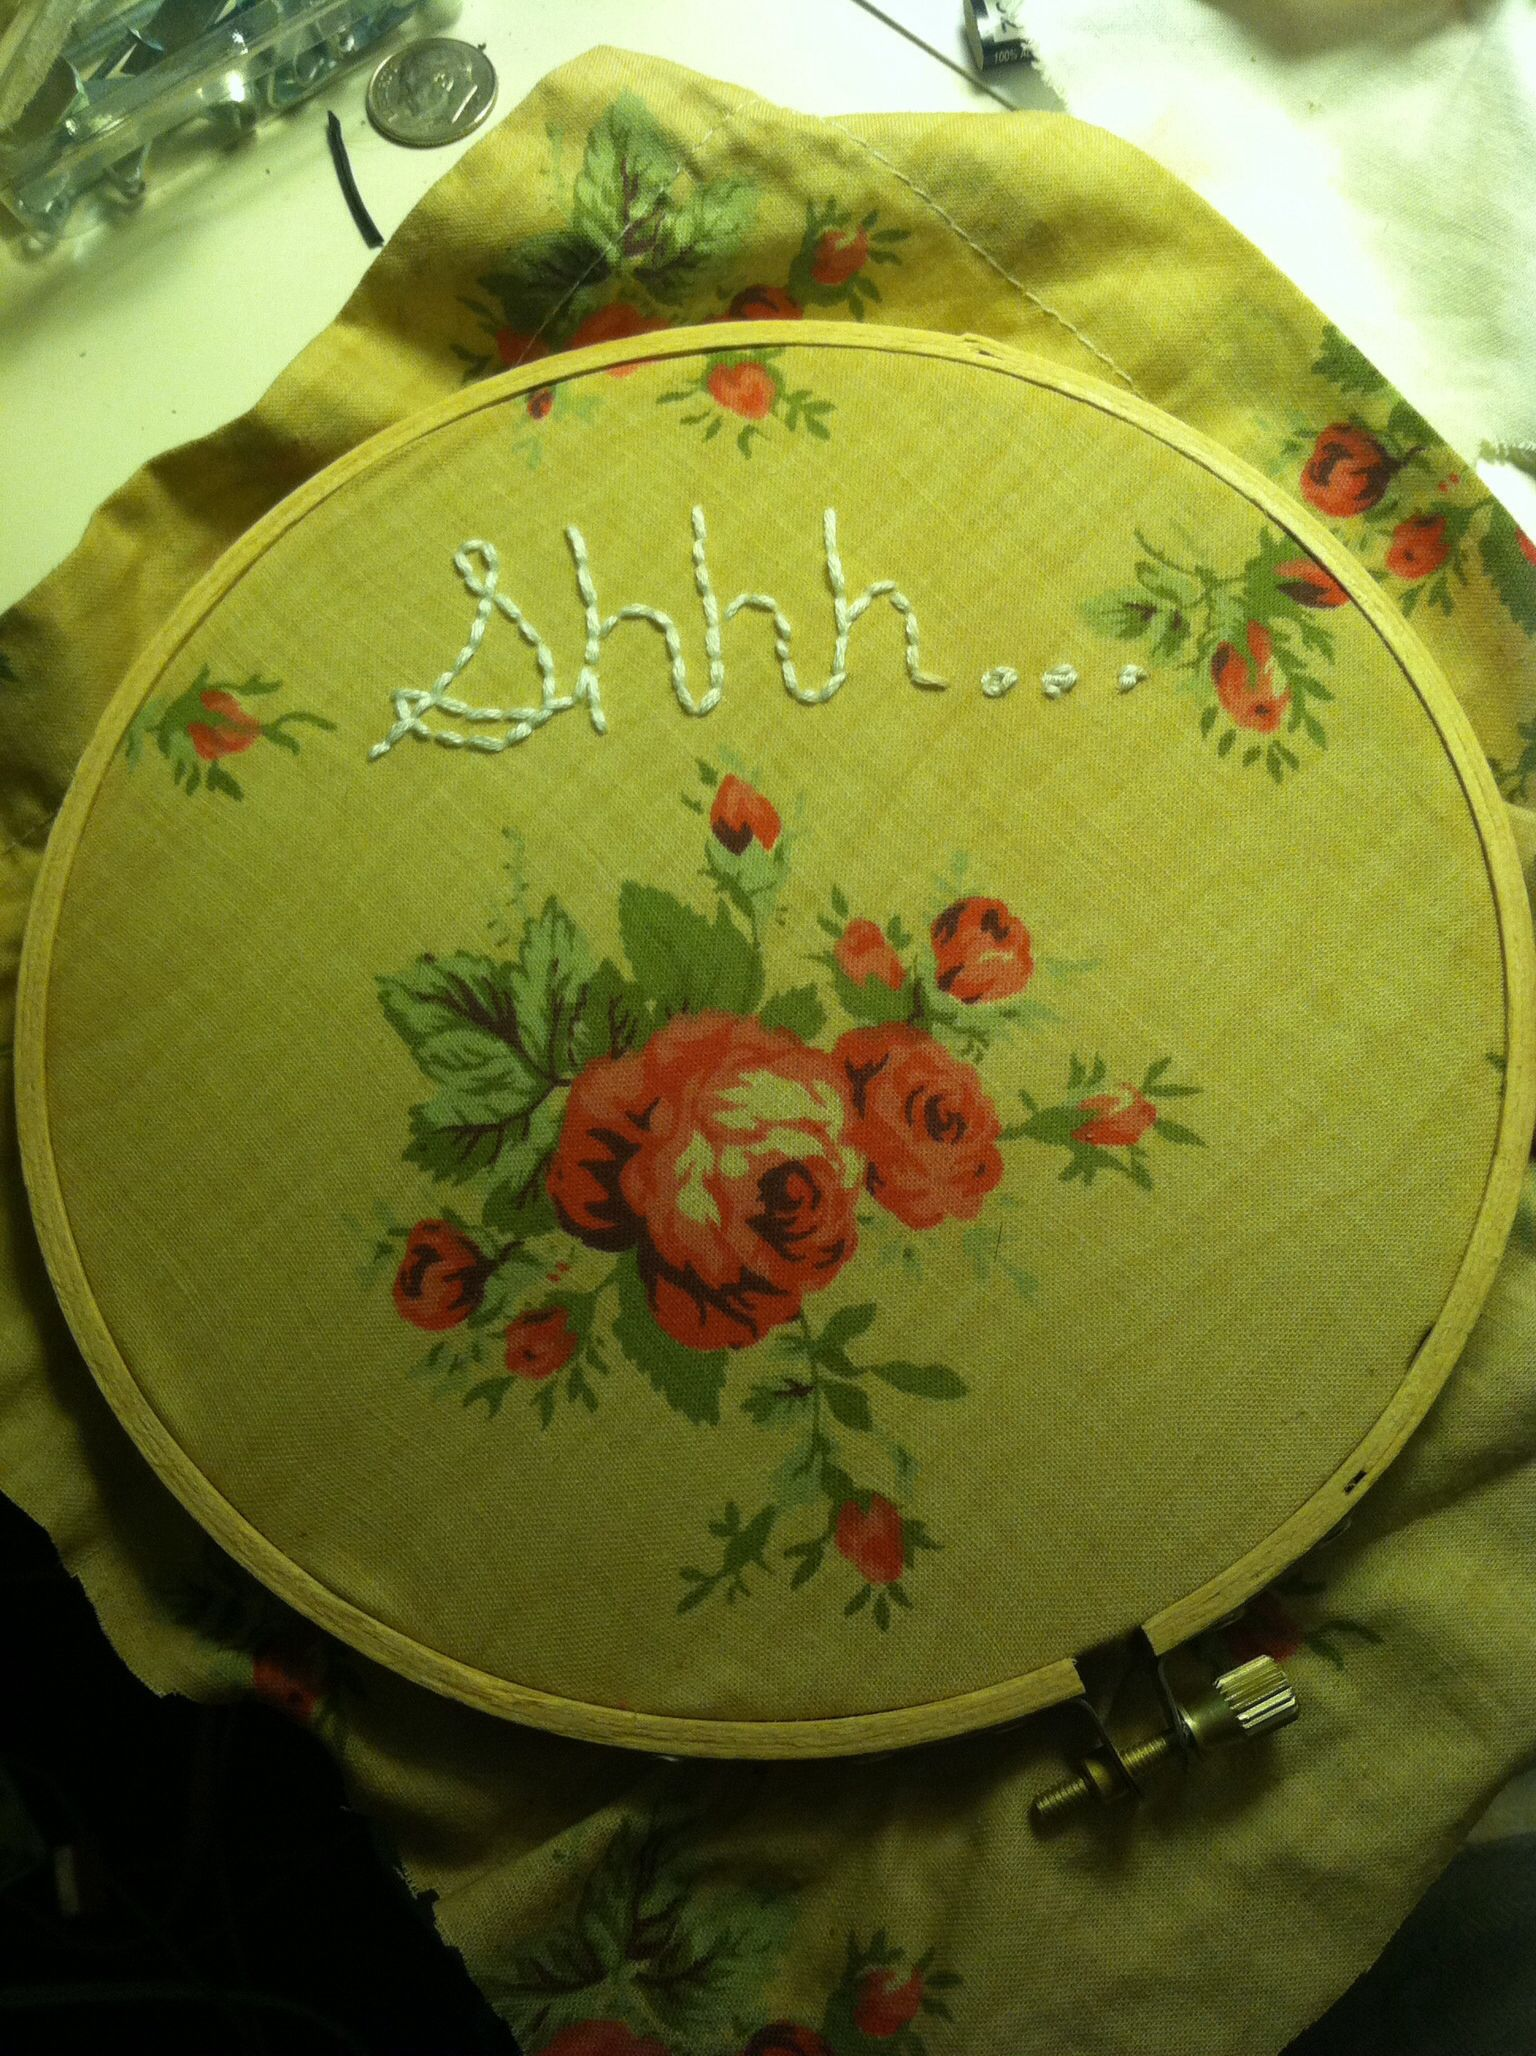 embroidery.  shhhh.